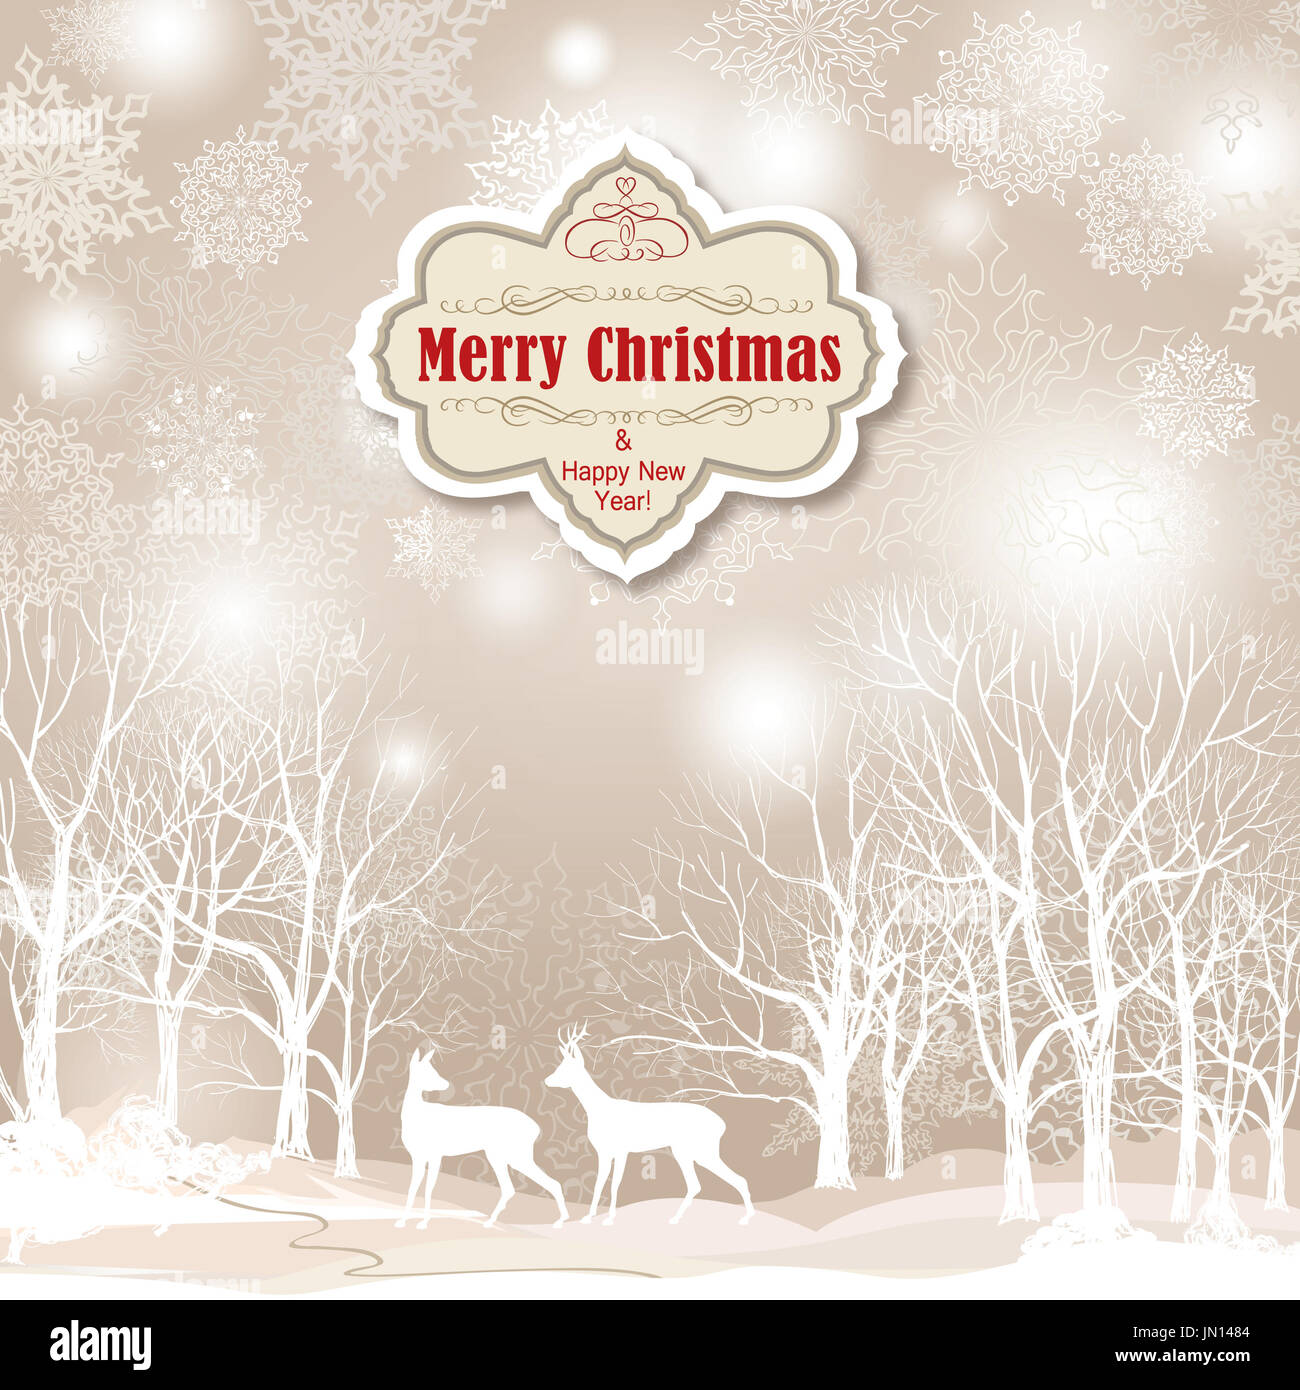 snow winter landscape with two deers merry christmas background with JN1484